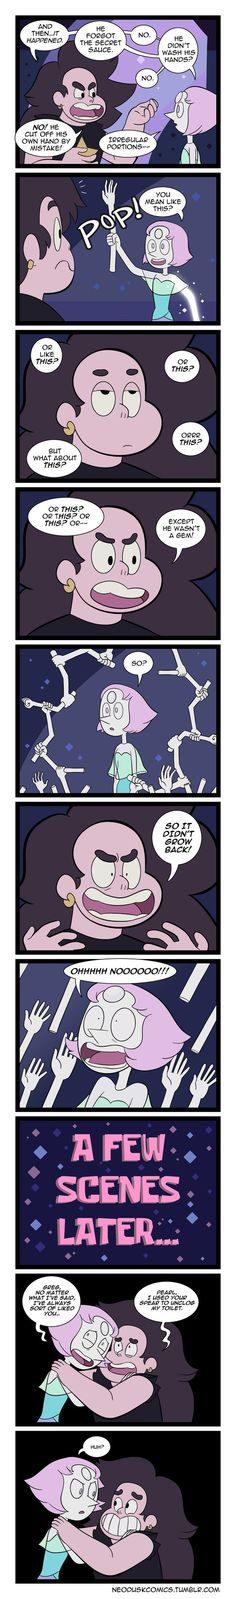 Steven Universe: The Gem Slashing Slinker by Neodusk.deviantart.com on @DeviantArt